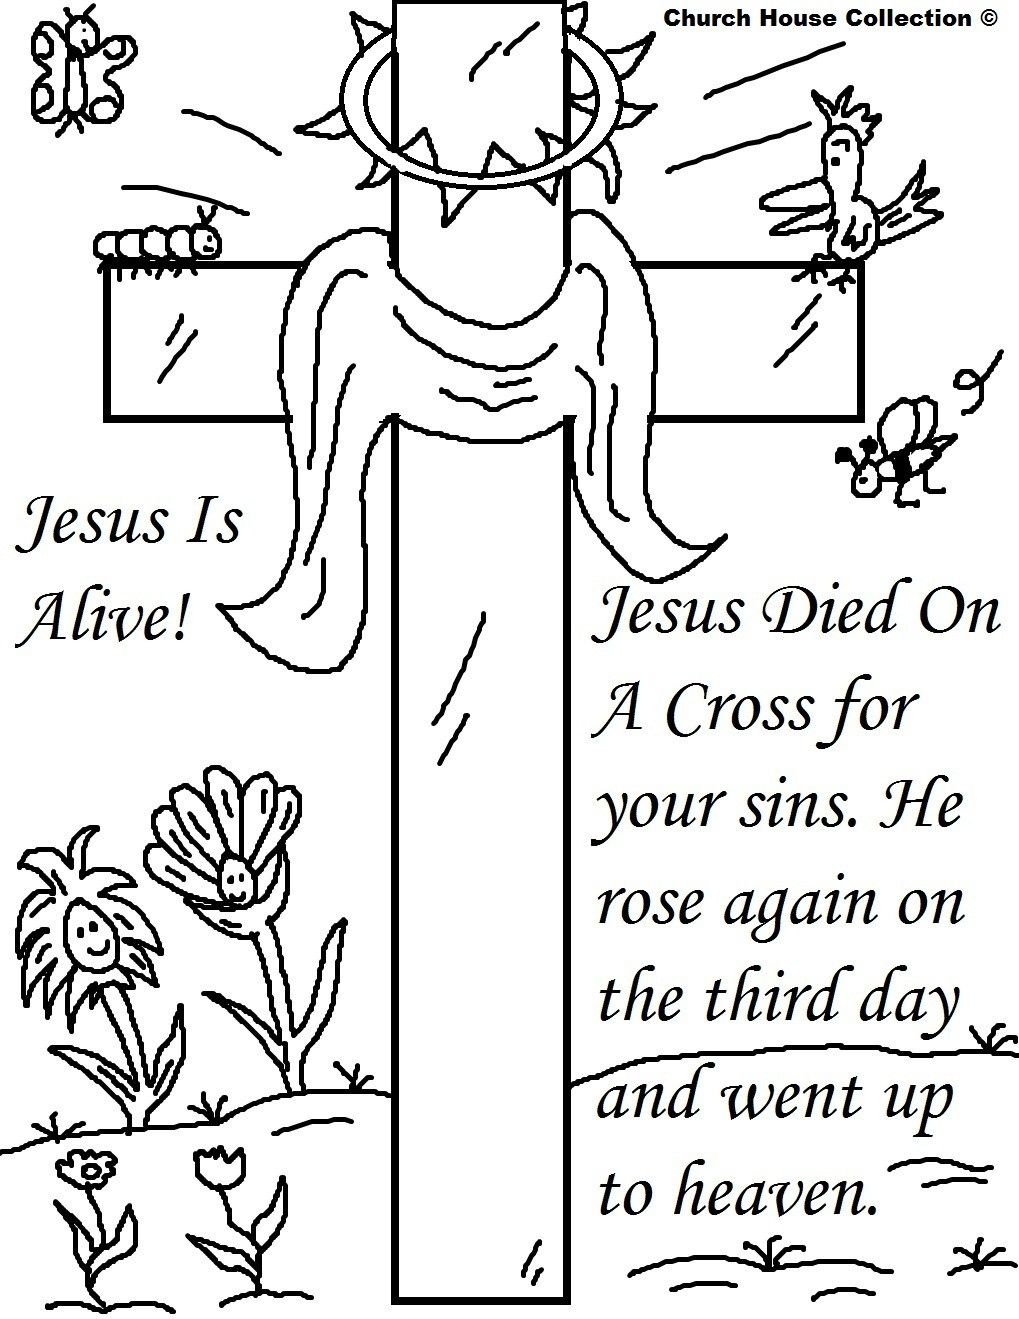 Free Christian Coloring Pages For Kids Printable | Printable ...